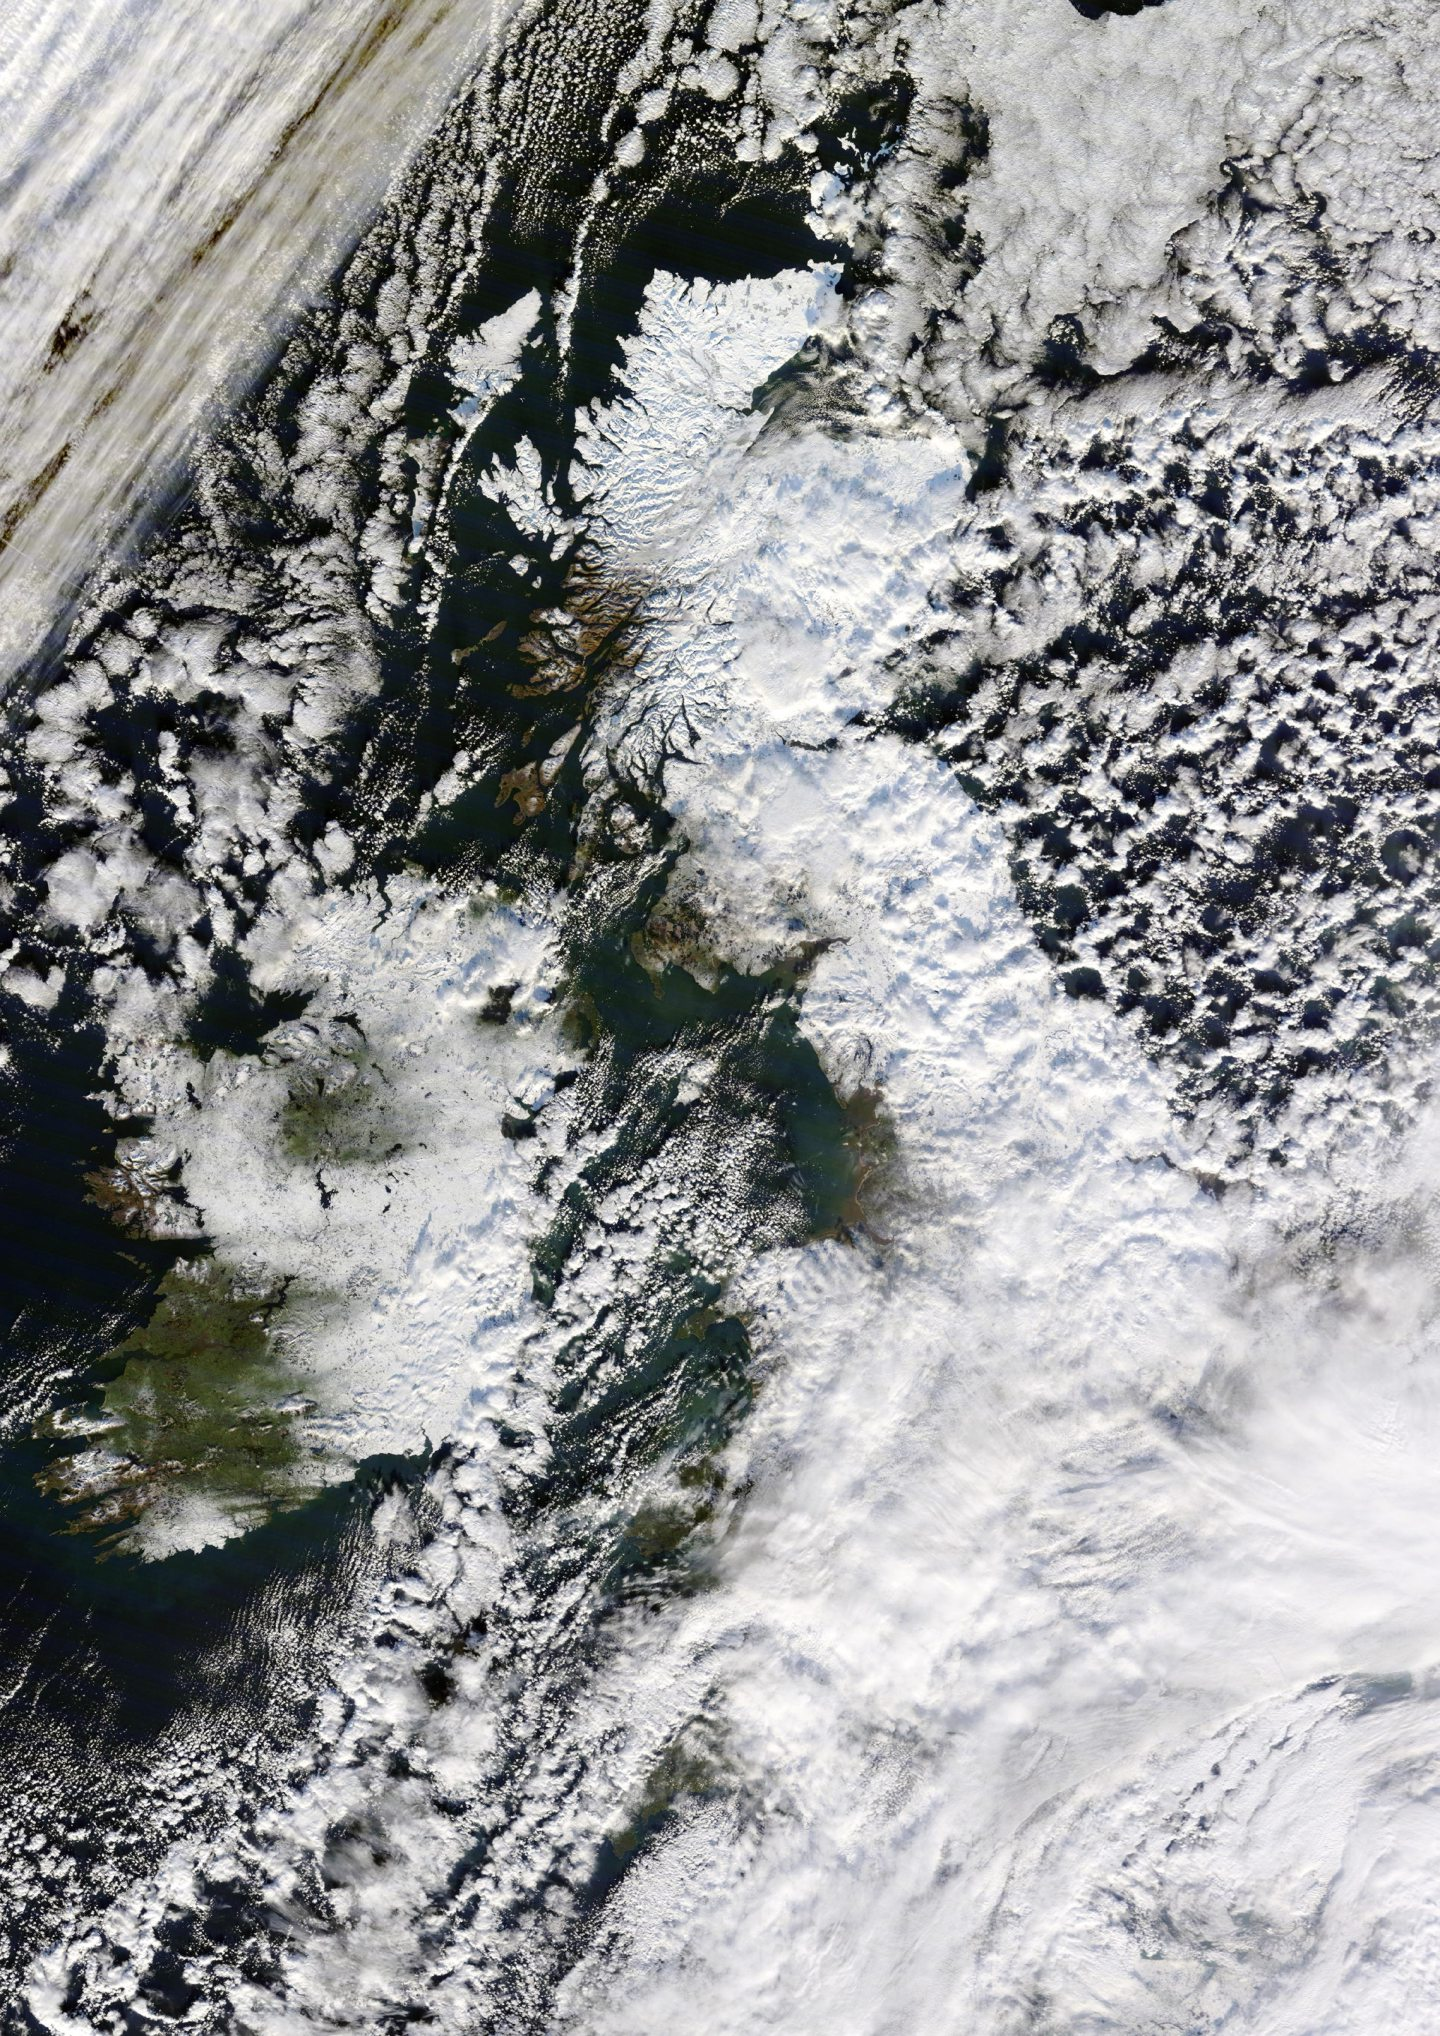 This striking image issued by Dundee University, taken by the NASA satellite Terra, shows the UK completely covered in snow in December 2010.